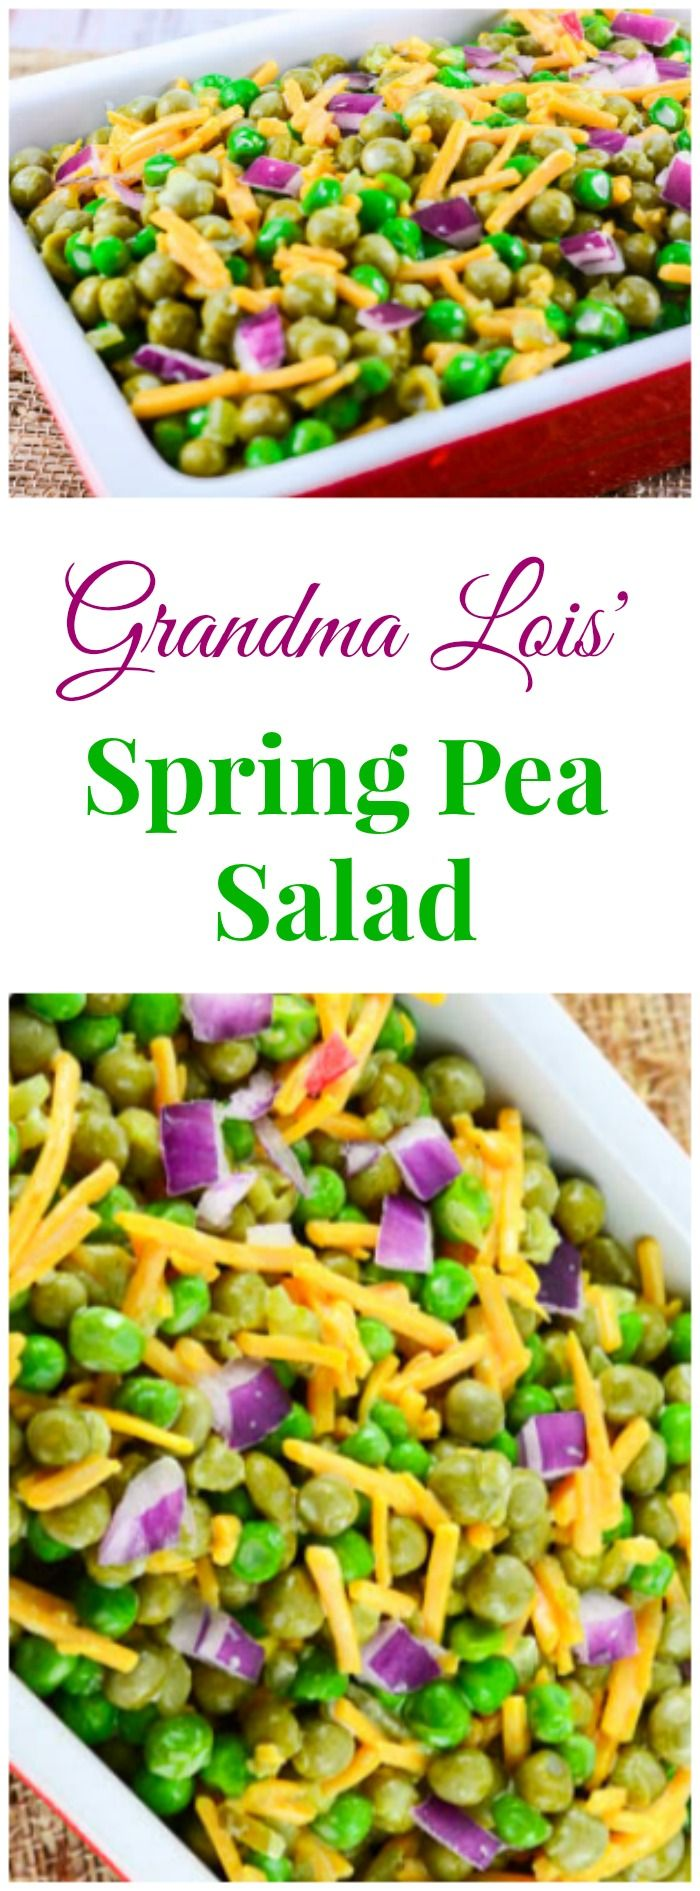 Grandma Lois' Spring Pea Salad is a perfect side dish for a family holiday dinner table for Easter or any time. ~ http://FlavorMosaic.com